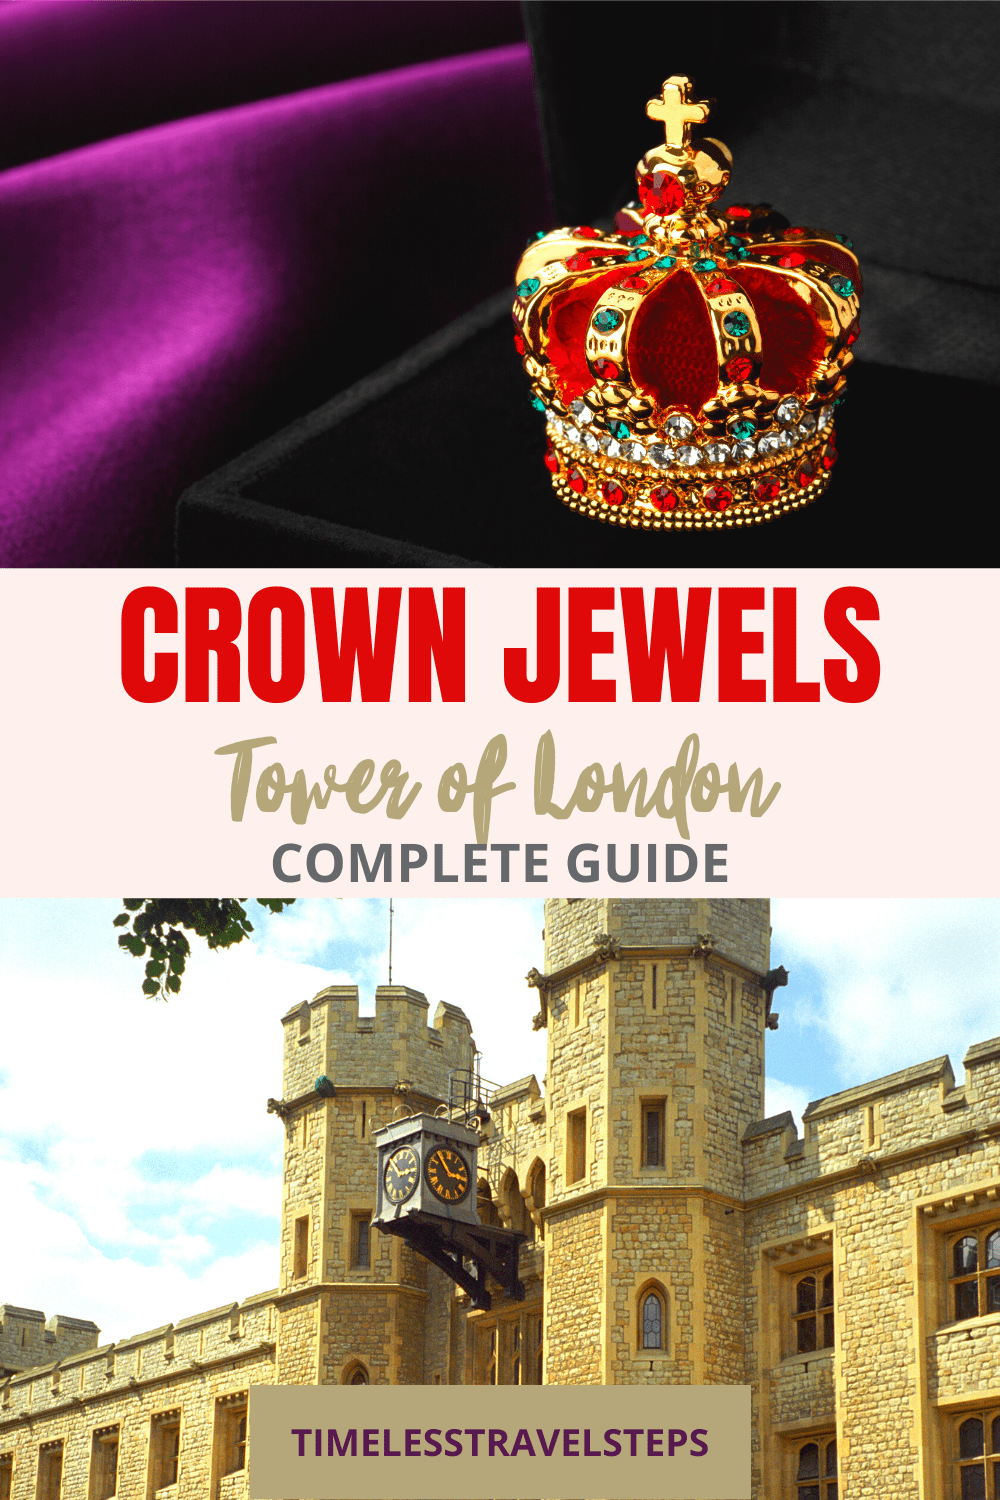 The most famous, and precious of British treasures, the magnificent Crown Jewels at the Tower is an embodiment of superb craftmanship. Take a look here and plan your next visit to the Tower of London | Tower of London | London Travel | Visit London | British History | The Royal Jewels | Historic Royal Palaces | Royal Collection Trust | Visit Britain | National Heritage | Royal Palaces | Train Travel in UK | Visit Scotland | Explore the Scottish Highlands via @GGeorgina_timelesstravelsteps/